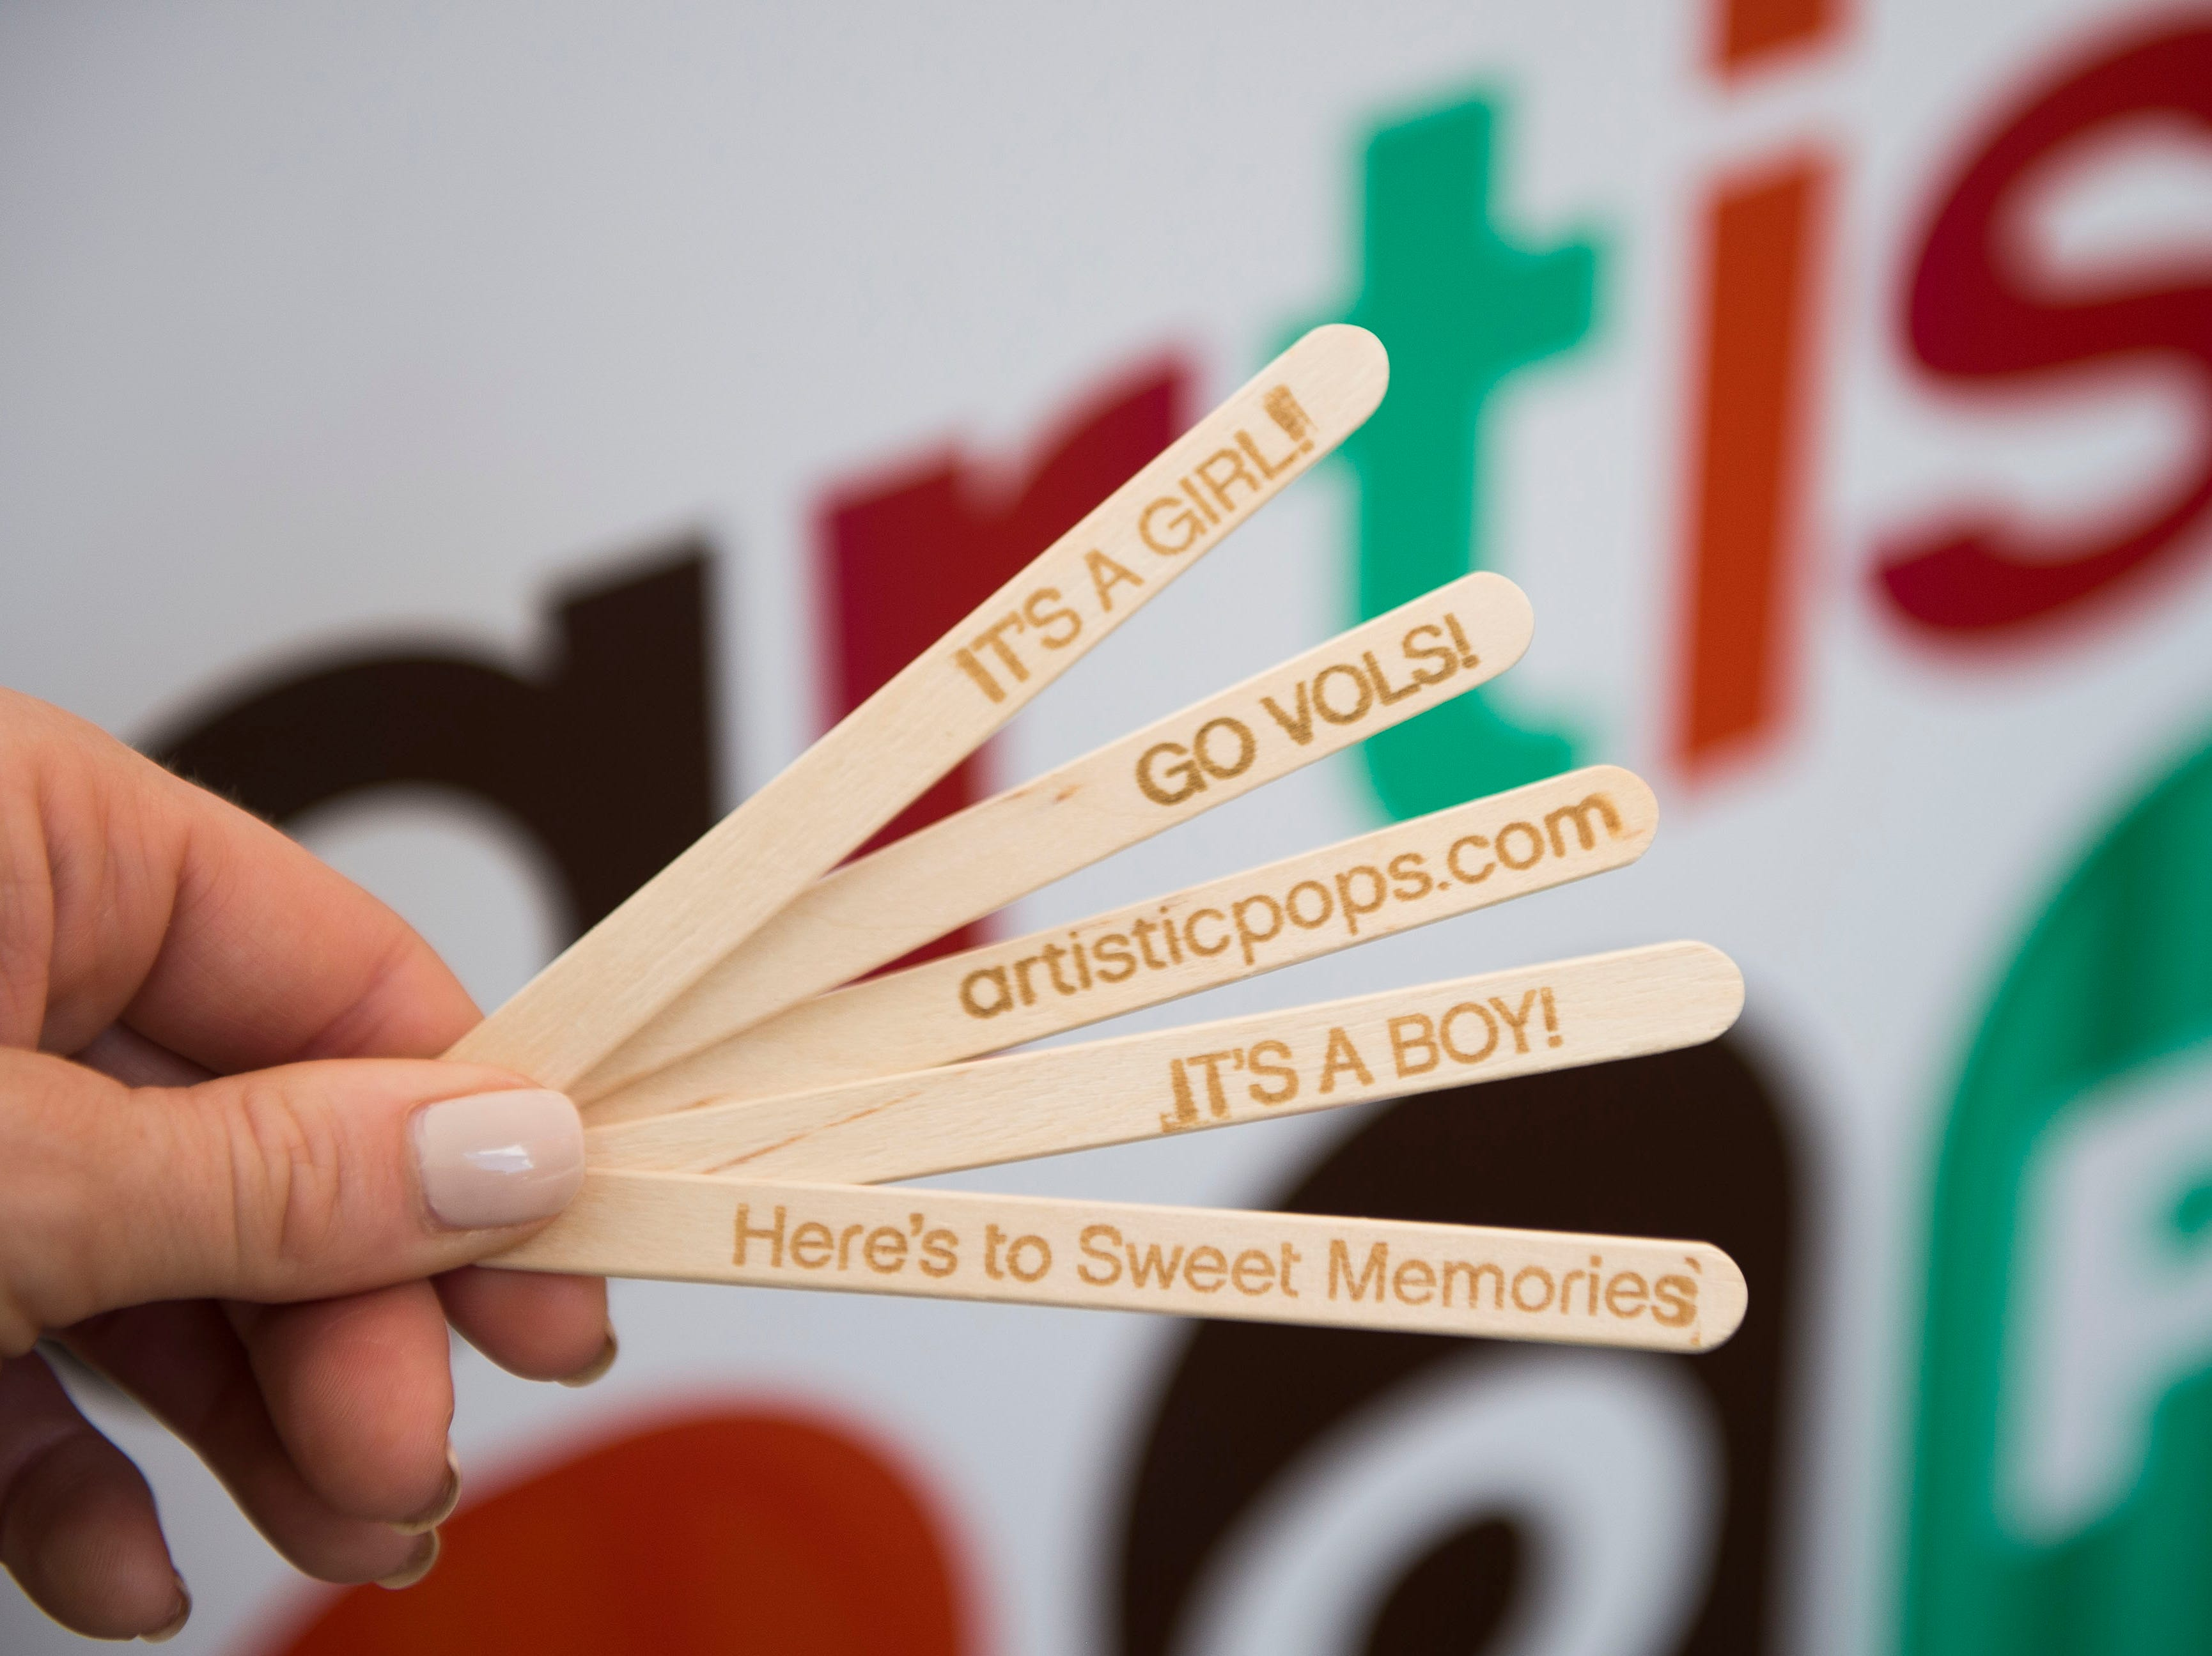 Kristina Killebrew holds custom popsicle sticks at the Artistic Pops stand at the farmers market in downtown Knoxville Saturday, Aug. 4, 2018. Artistic Pops are gluten-free, nut-free, and dairy-free popsicles.